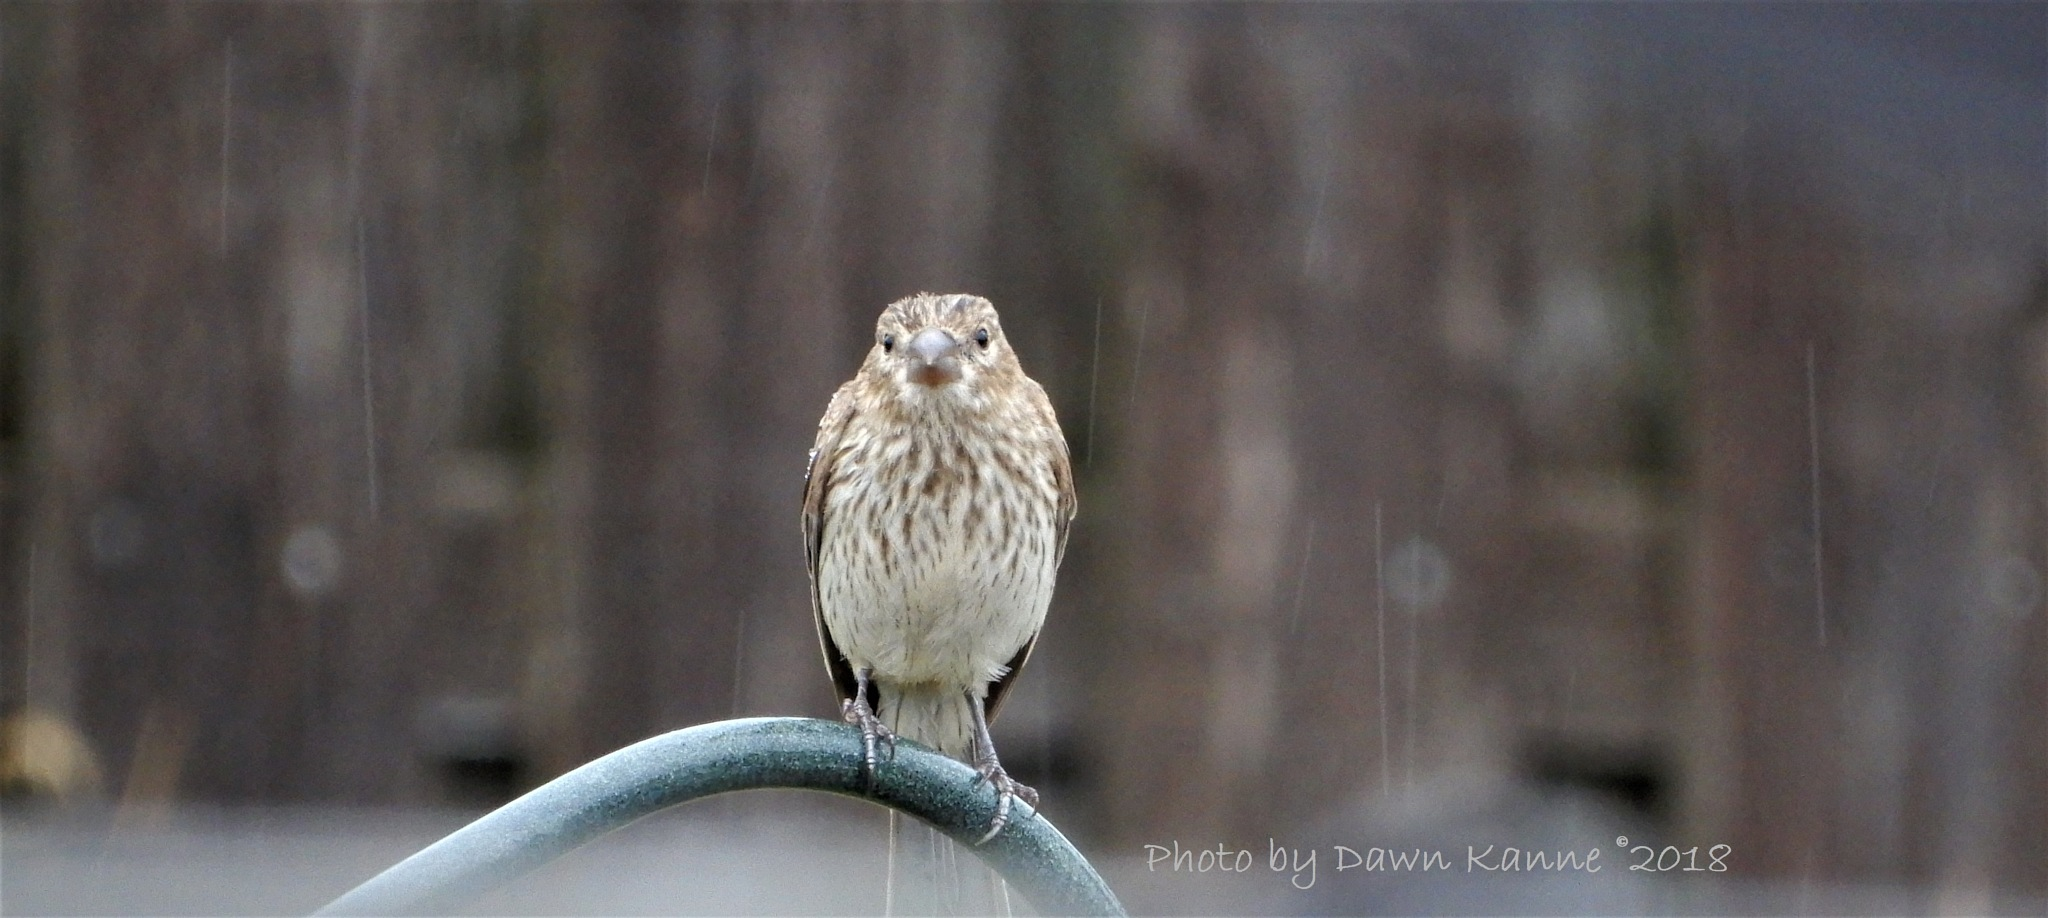 I know my feathers are looking a bit drab today, but I'm still workin it! by Dawn Kanne